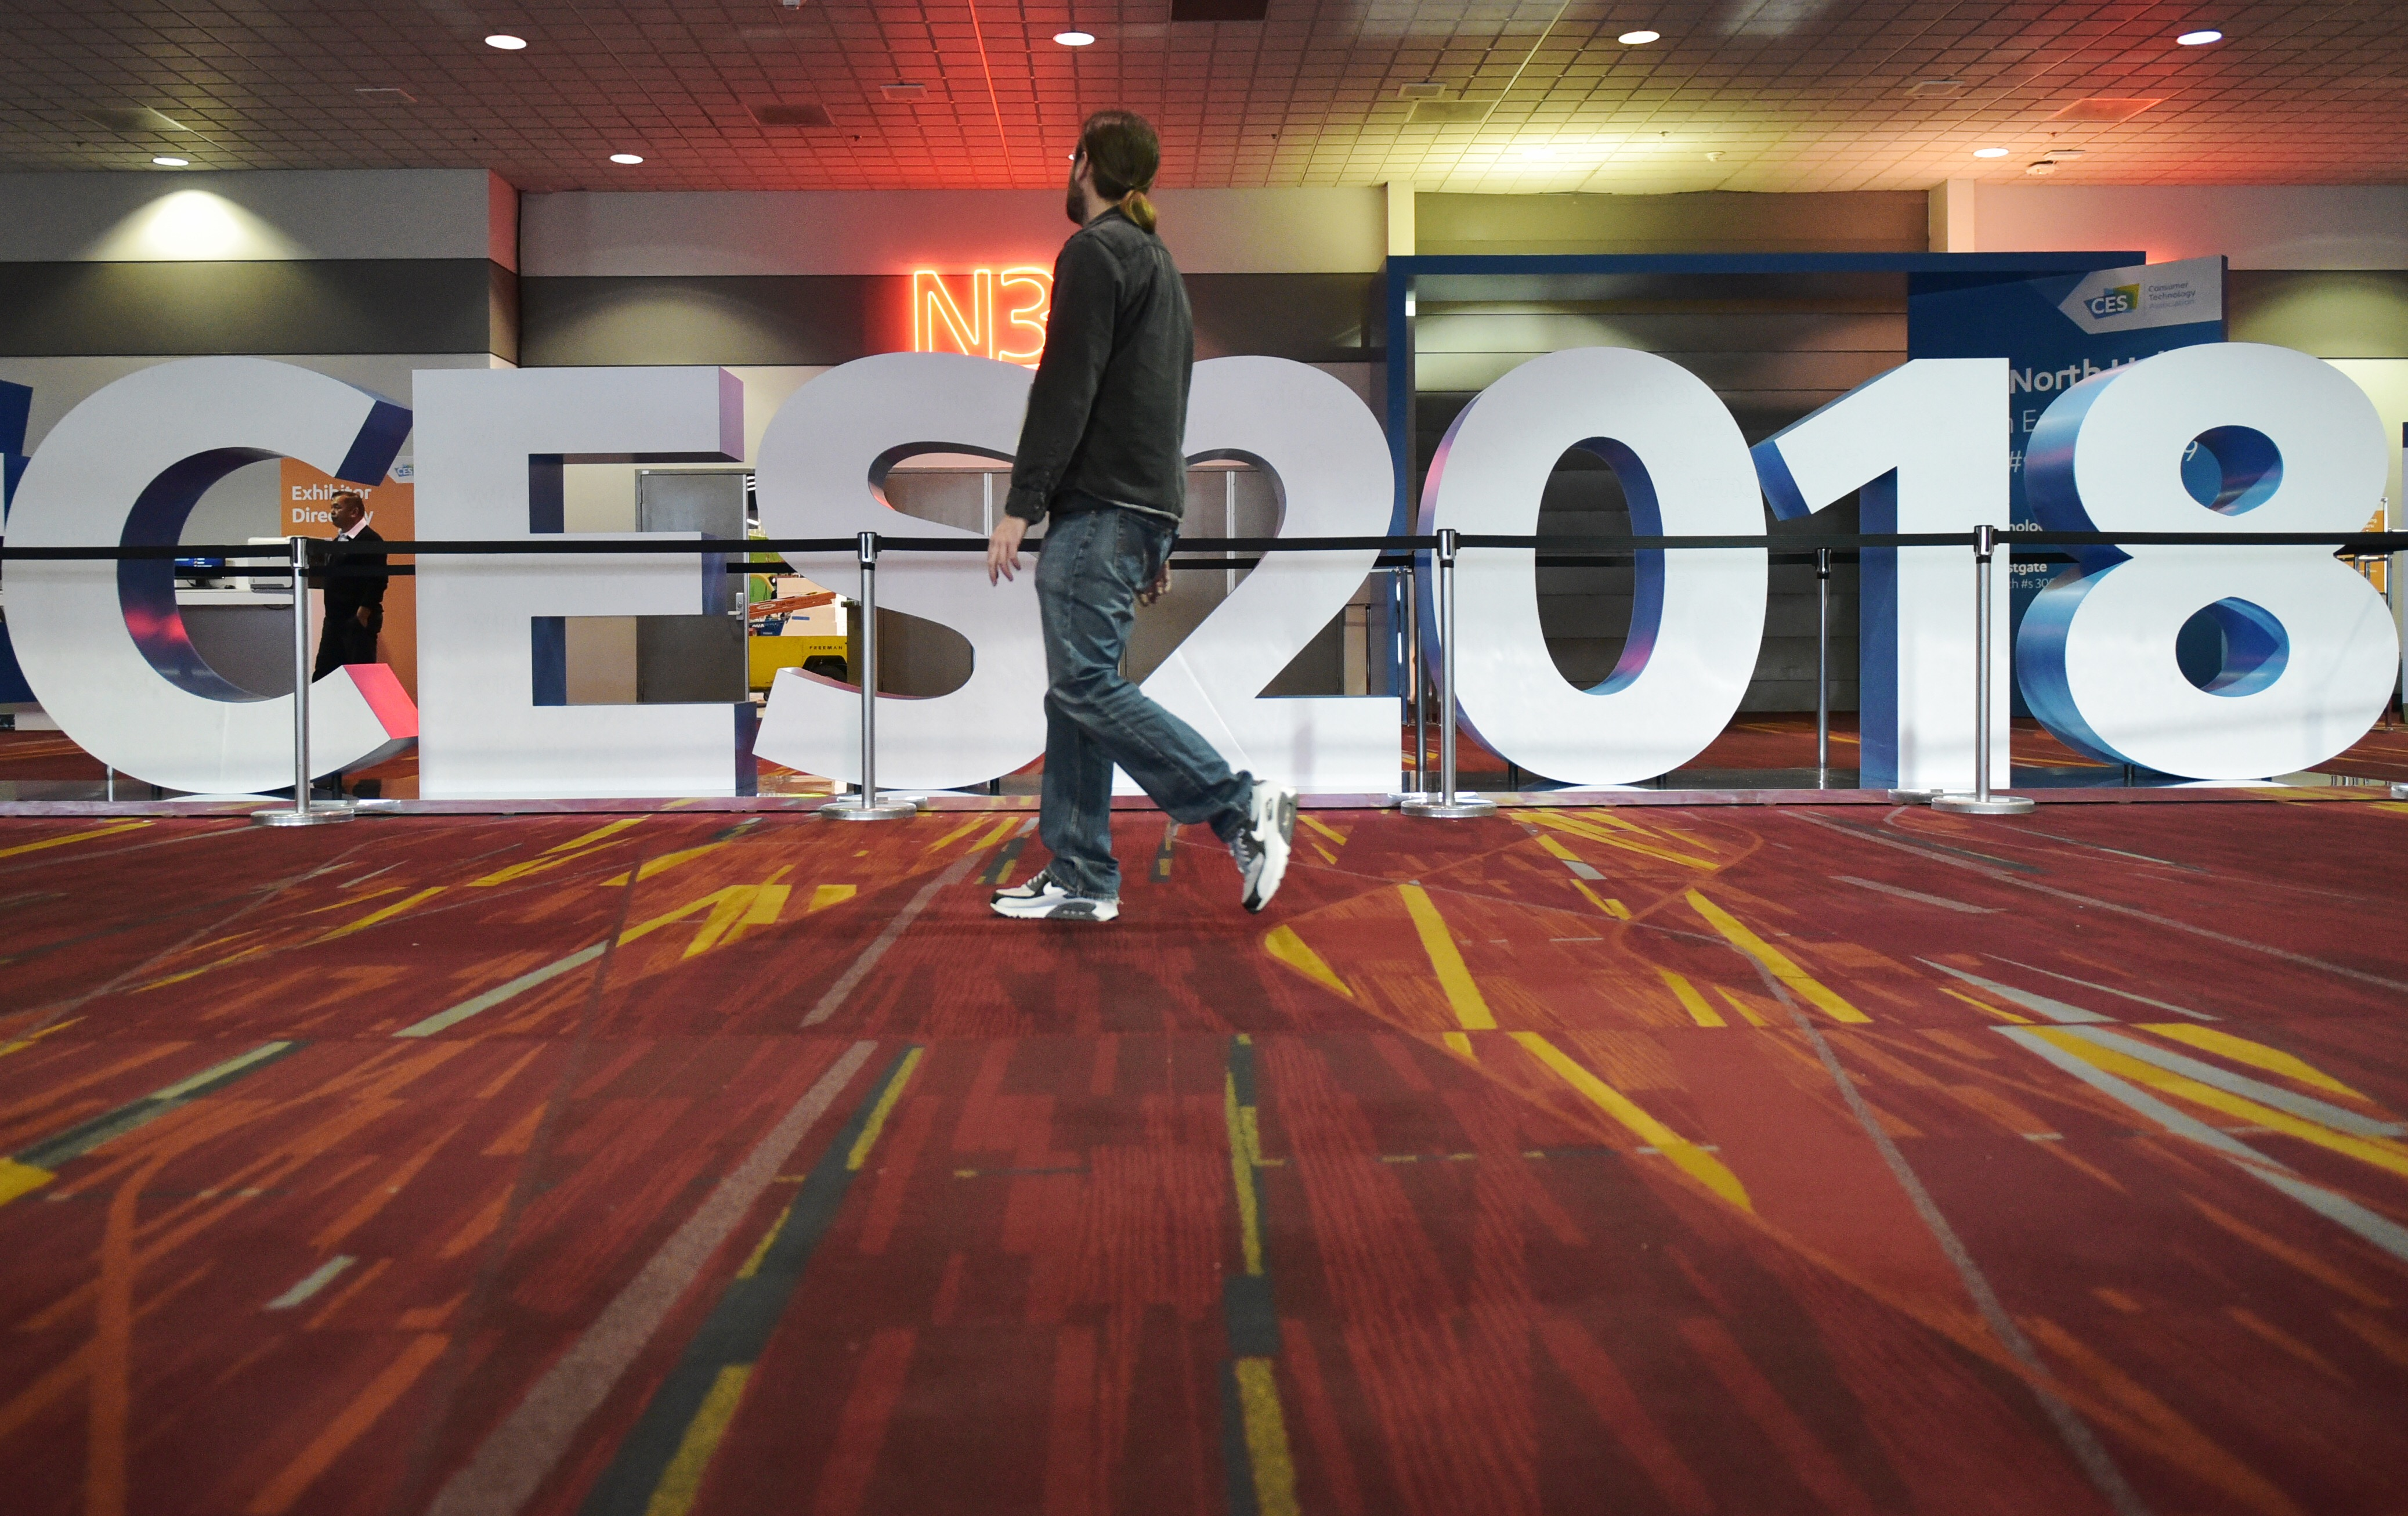 A conference attendee walks in front of the CES 2018 sign